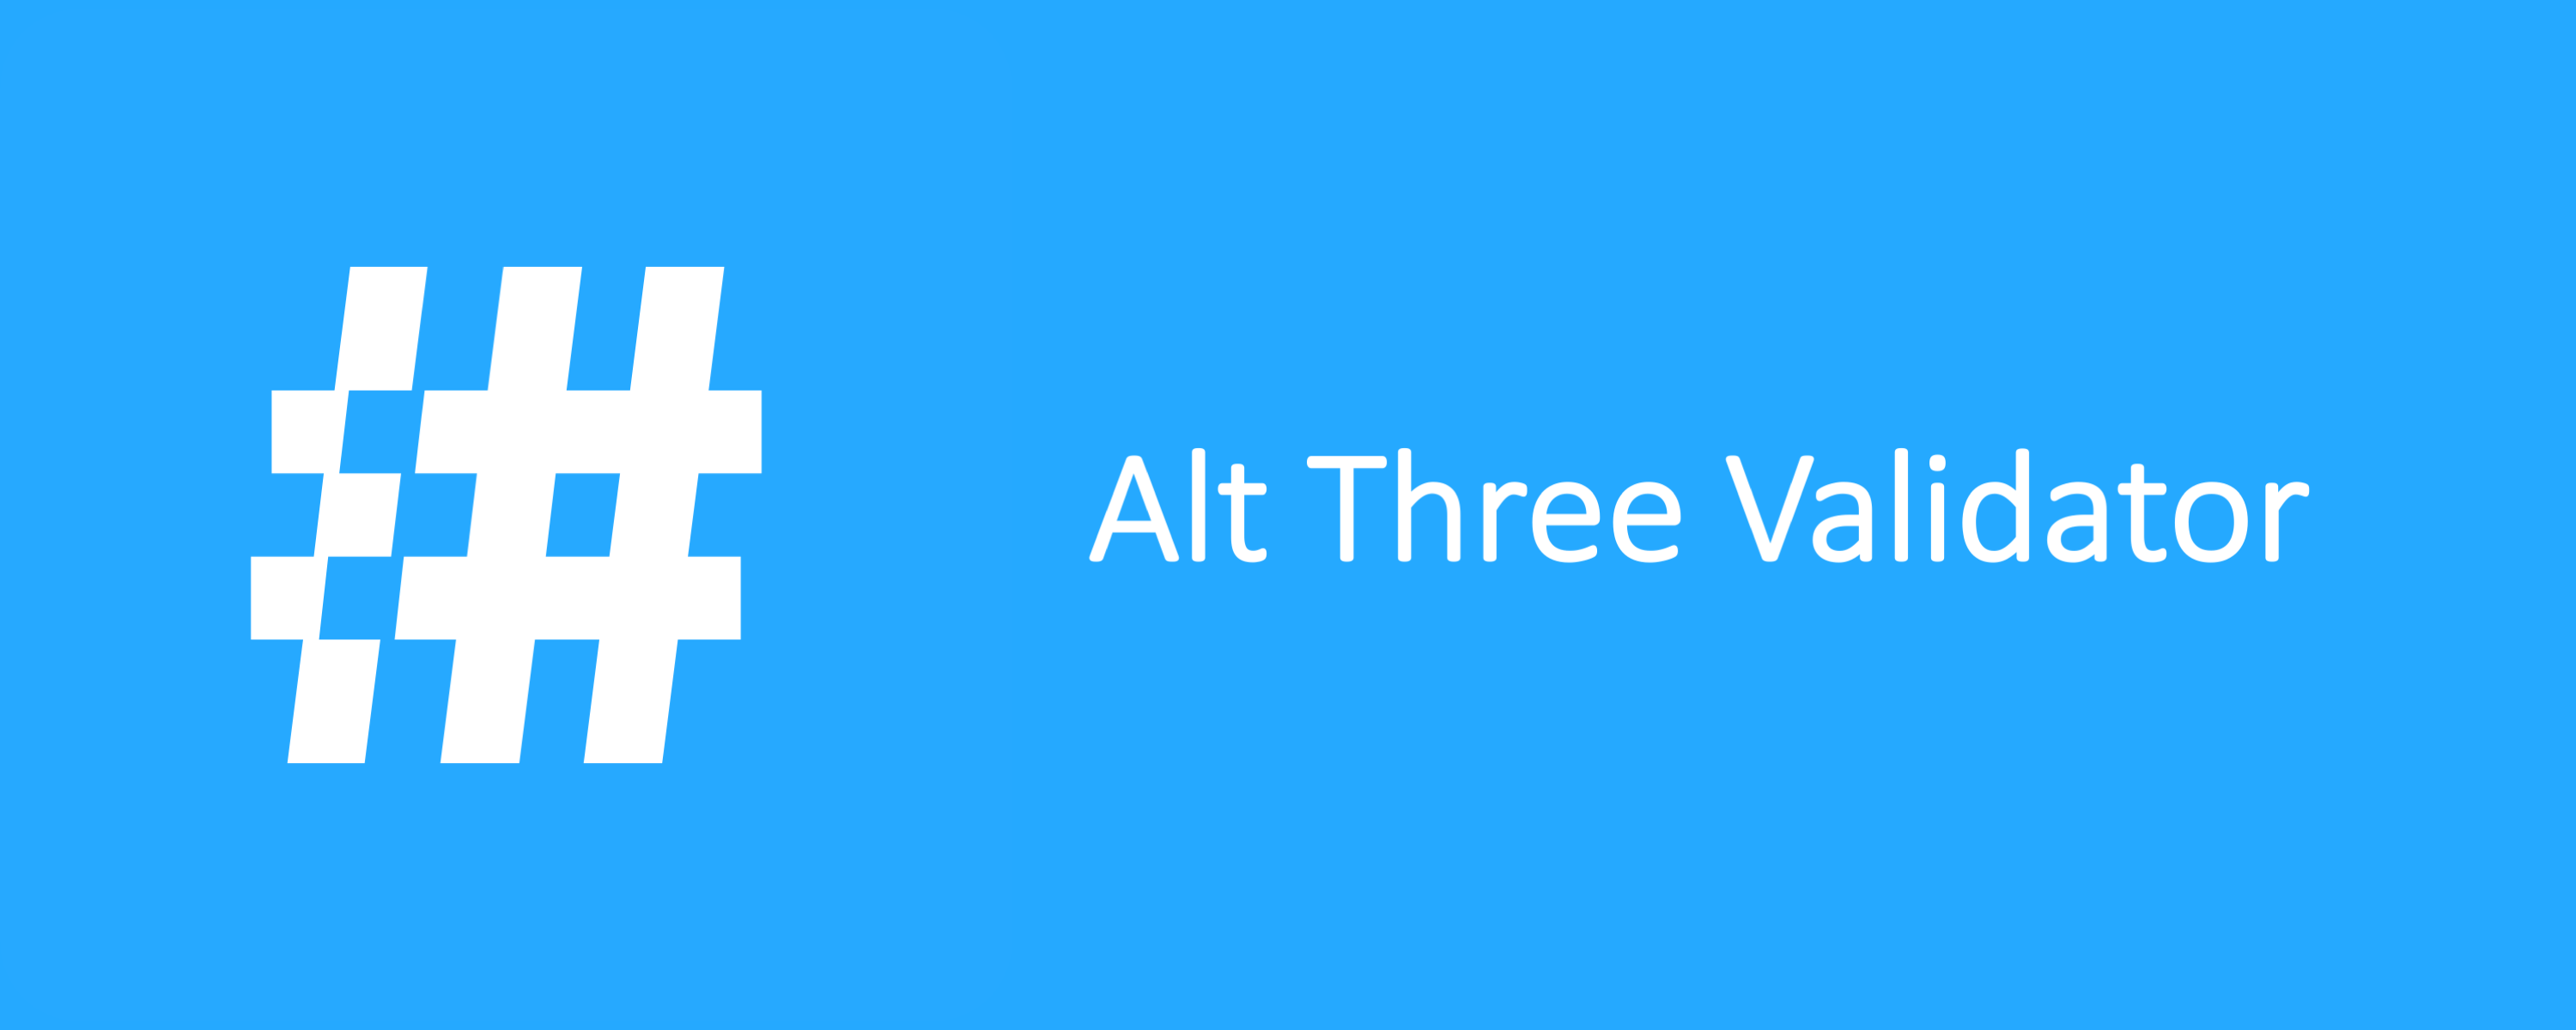 Alt Three Validator